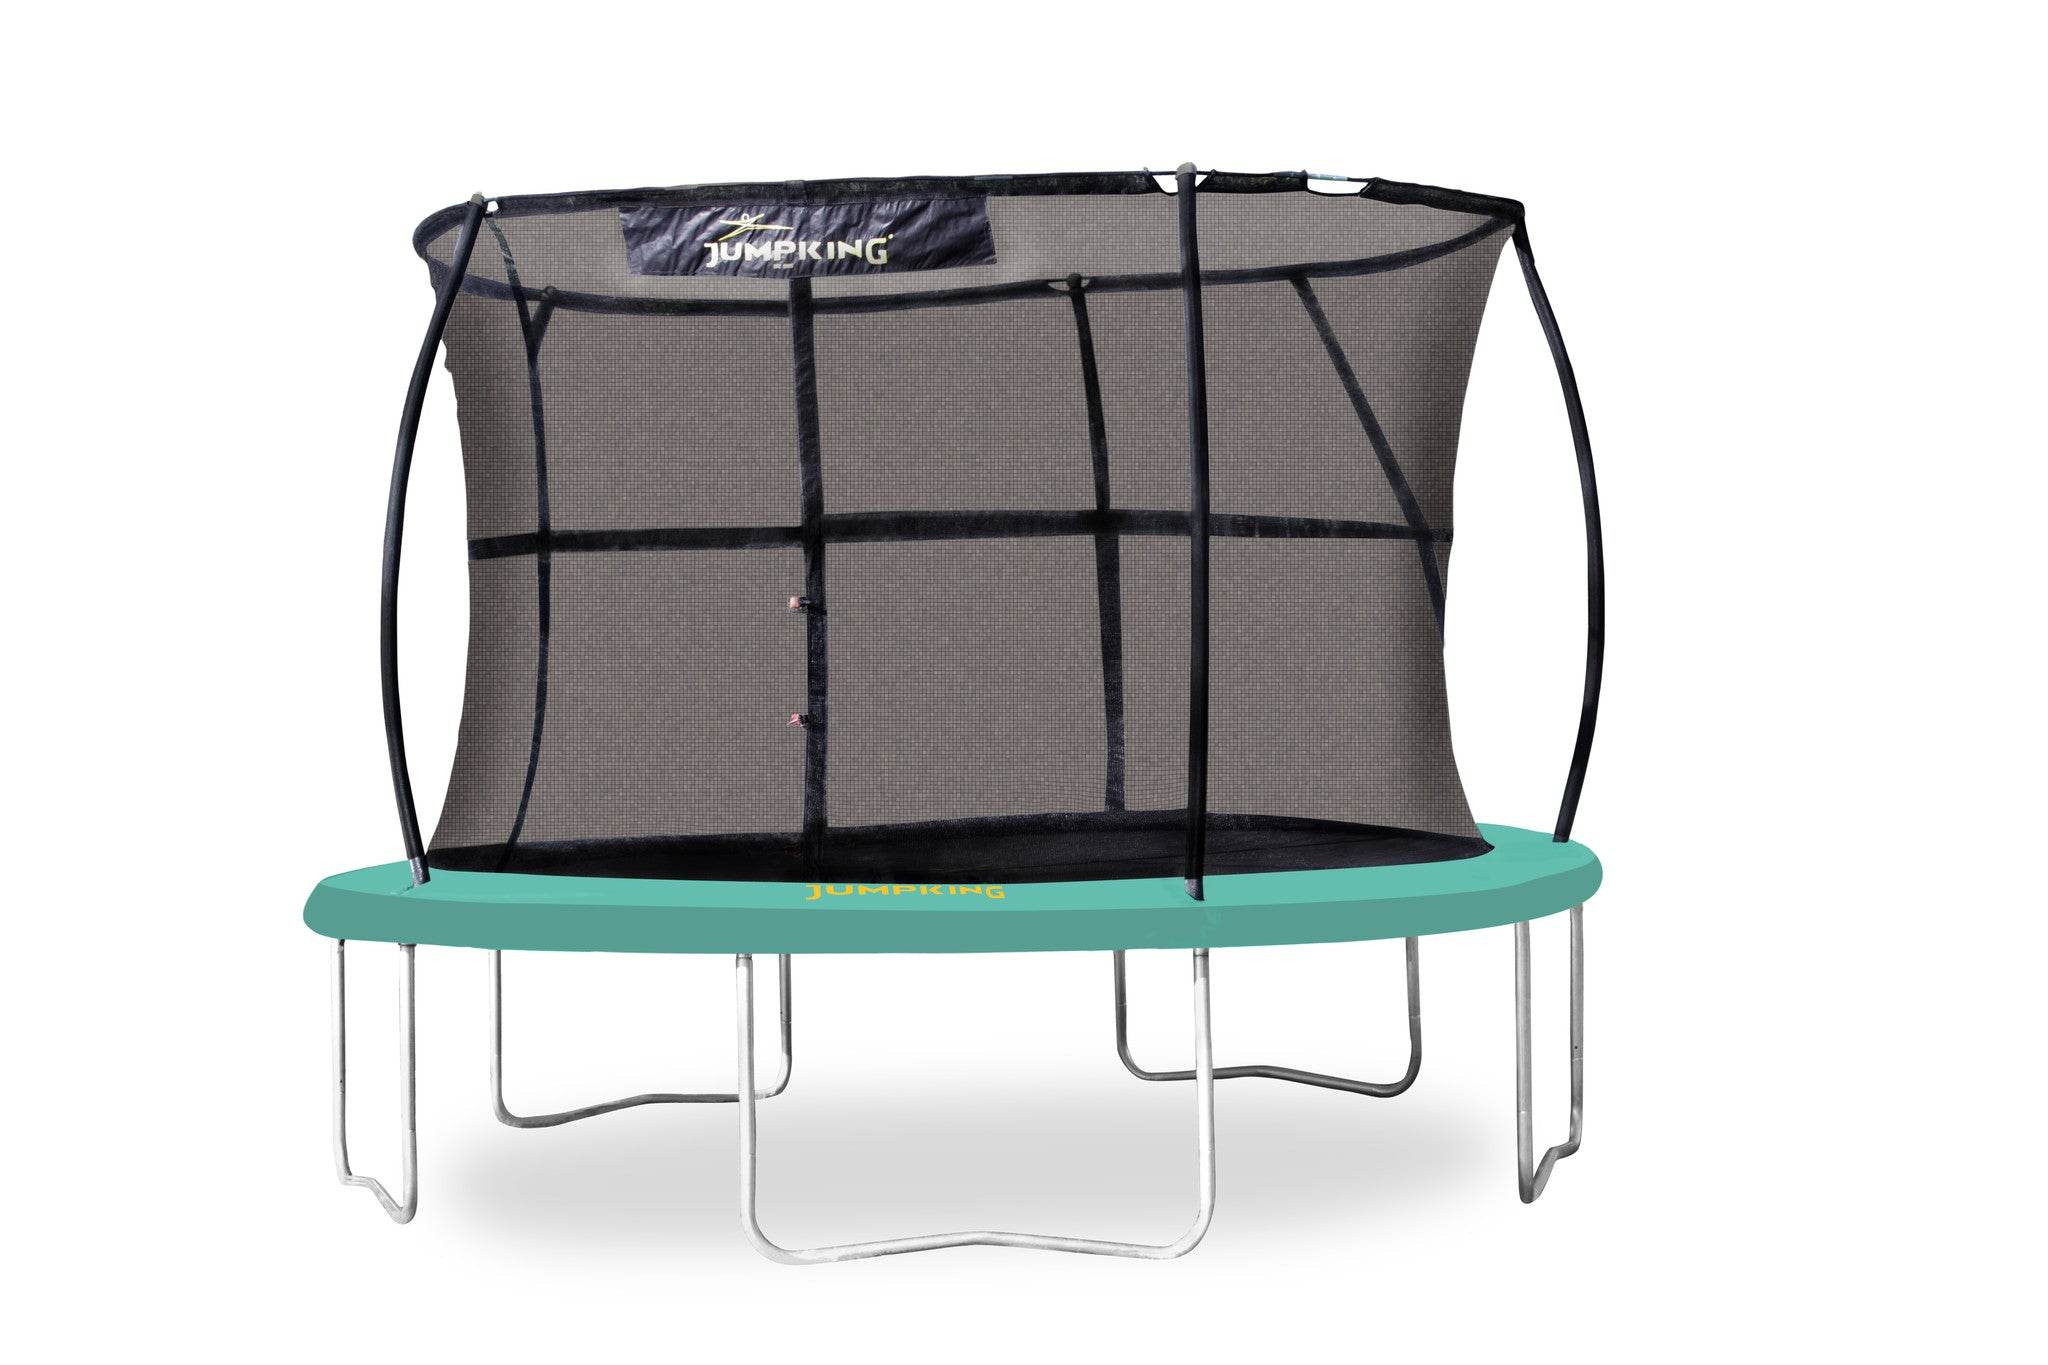 Jumpking Classic 10ft Trampoline with enclosure (2016 model)